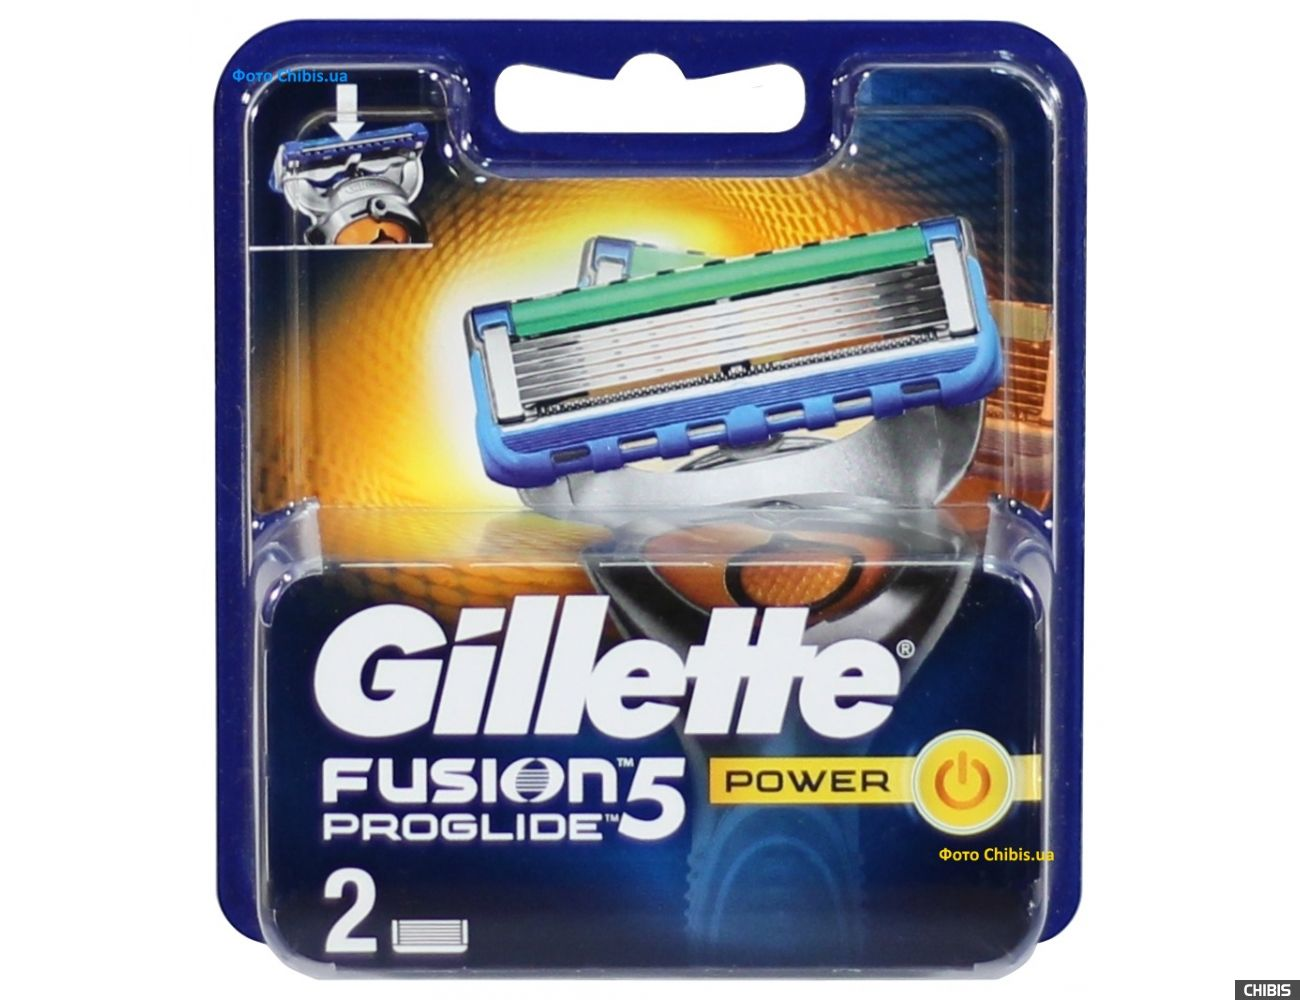 Gillette Fusion ProGlide Power лезвия для станка 2 шт 7702018085927